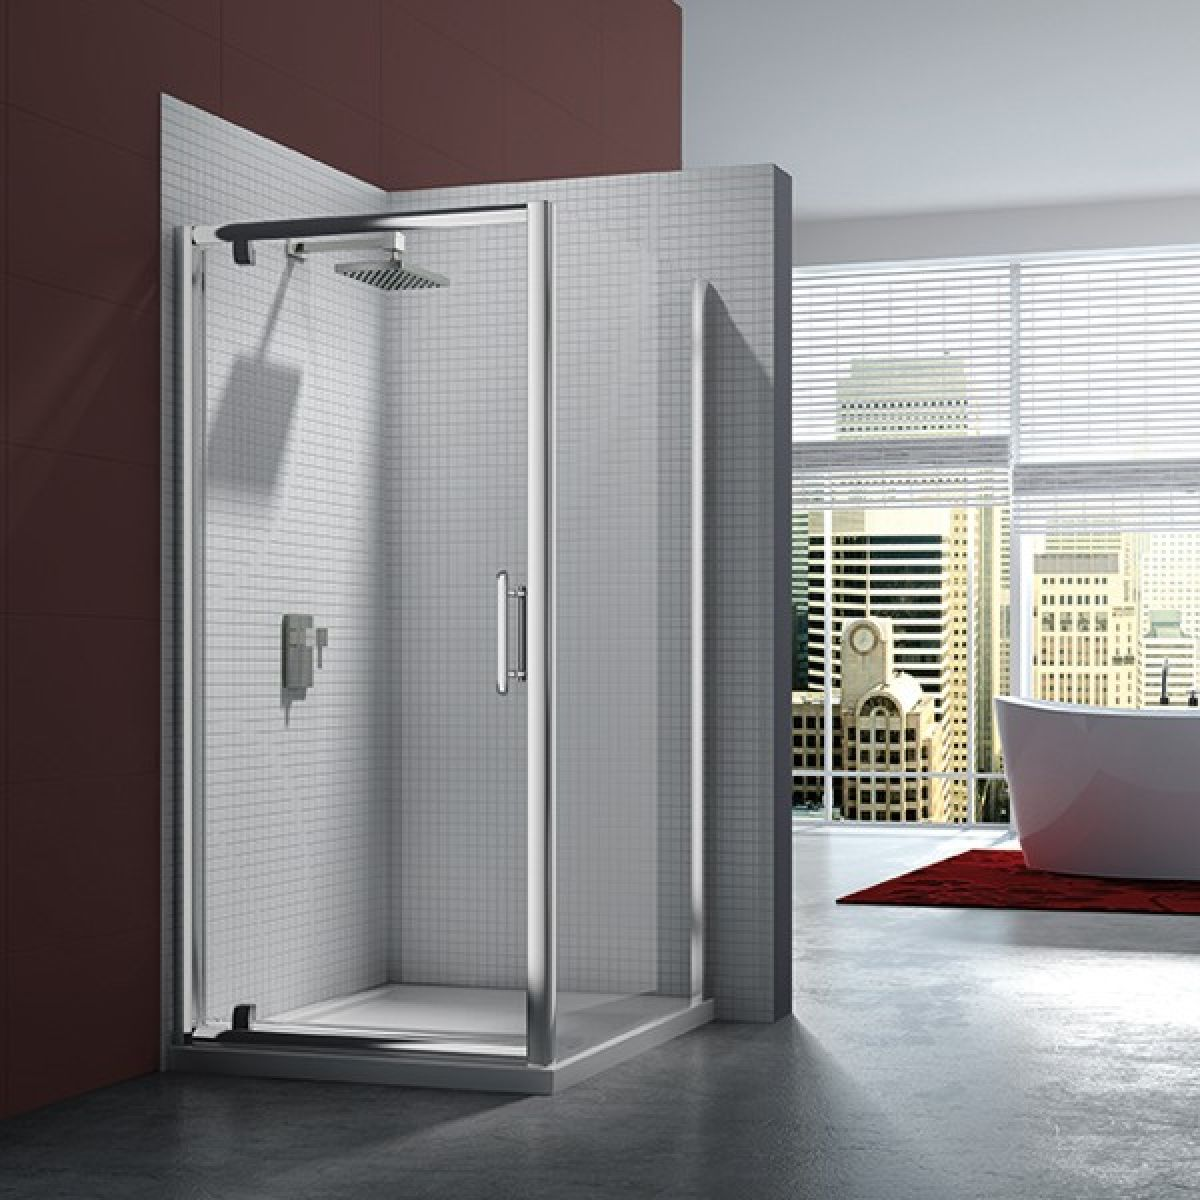 Merlyn Series 6 Pivot Door with Optional Side Panel